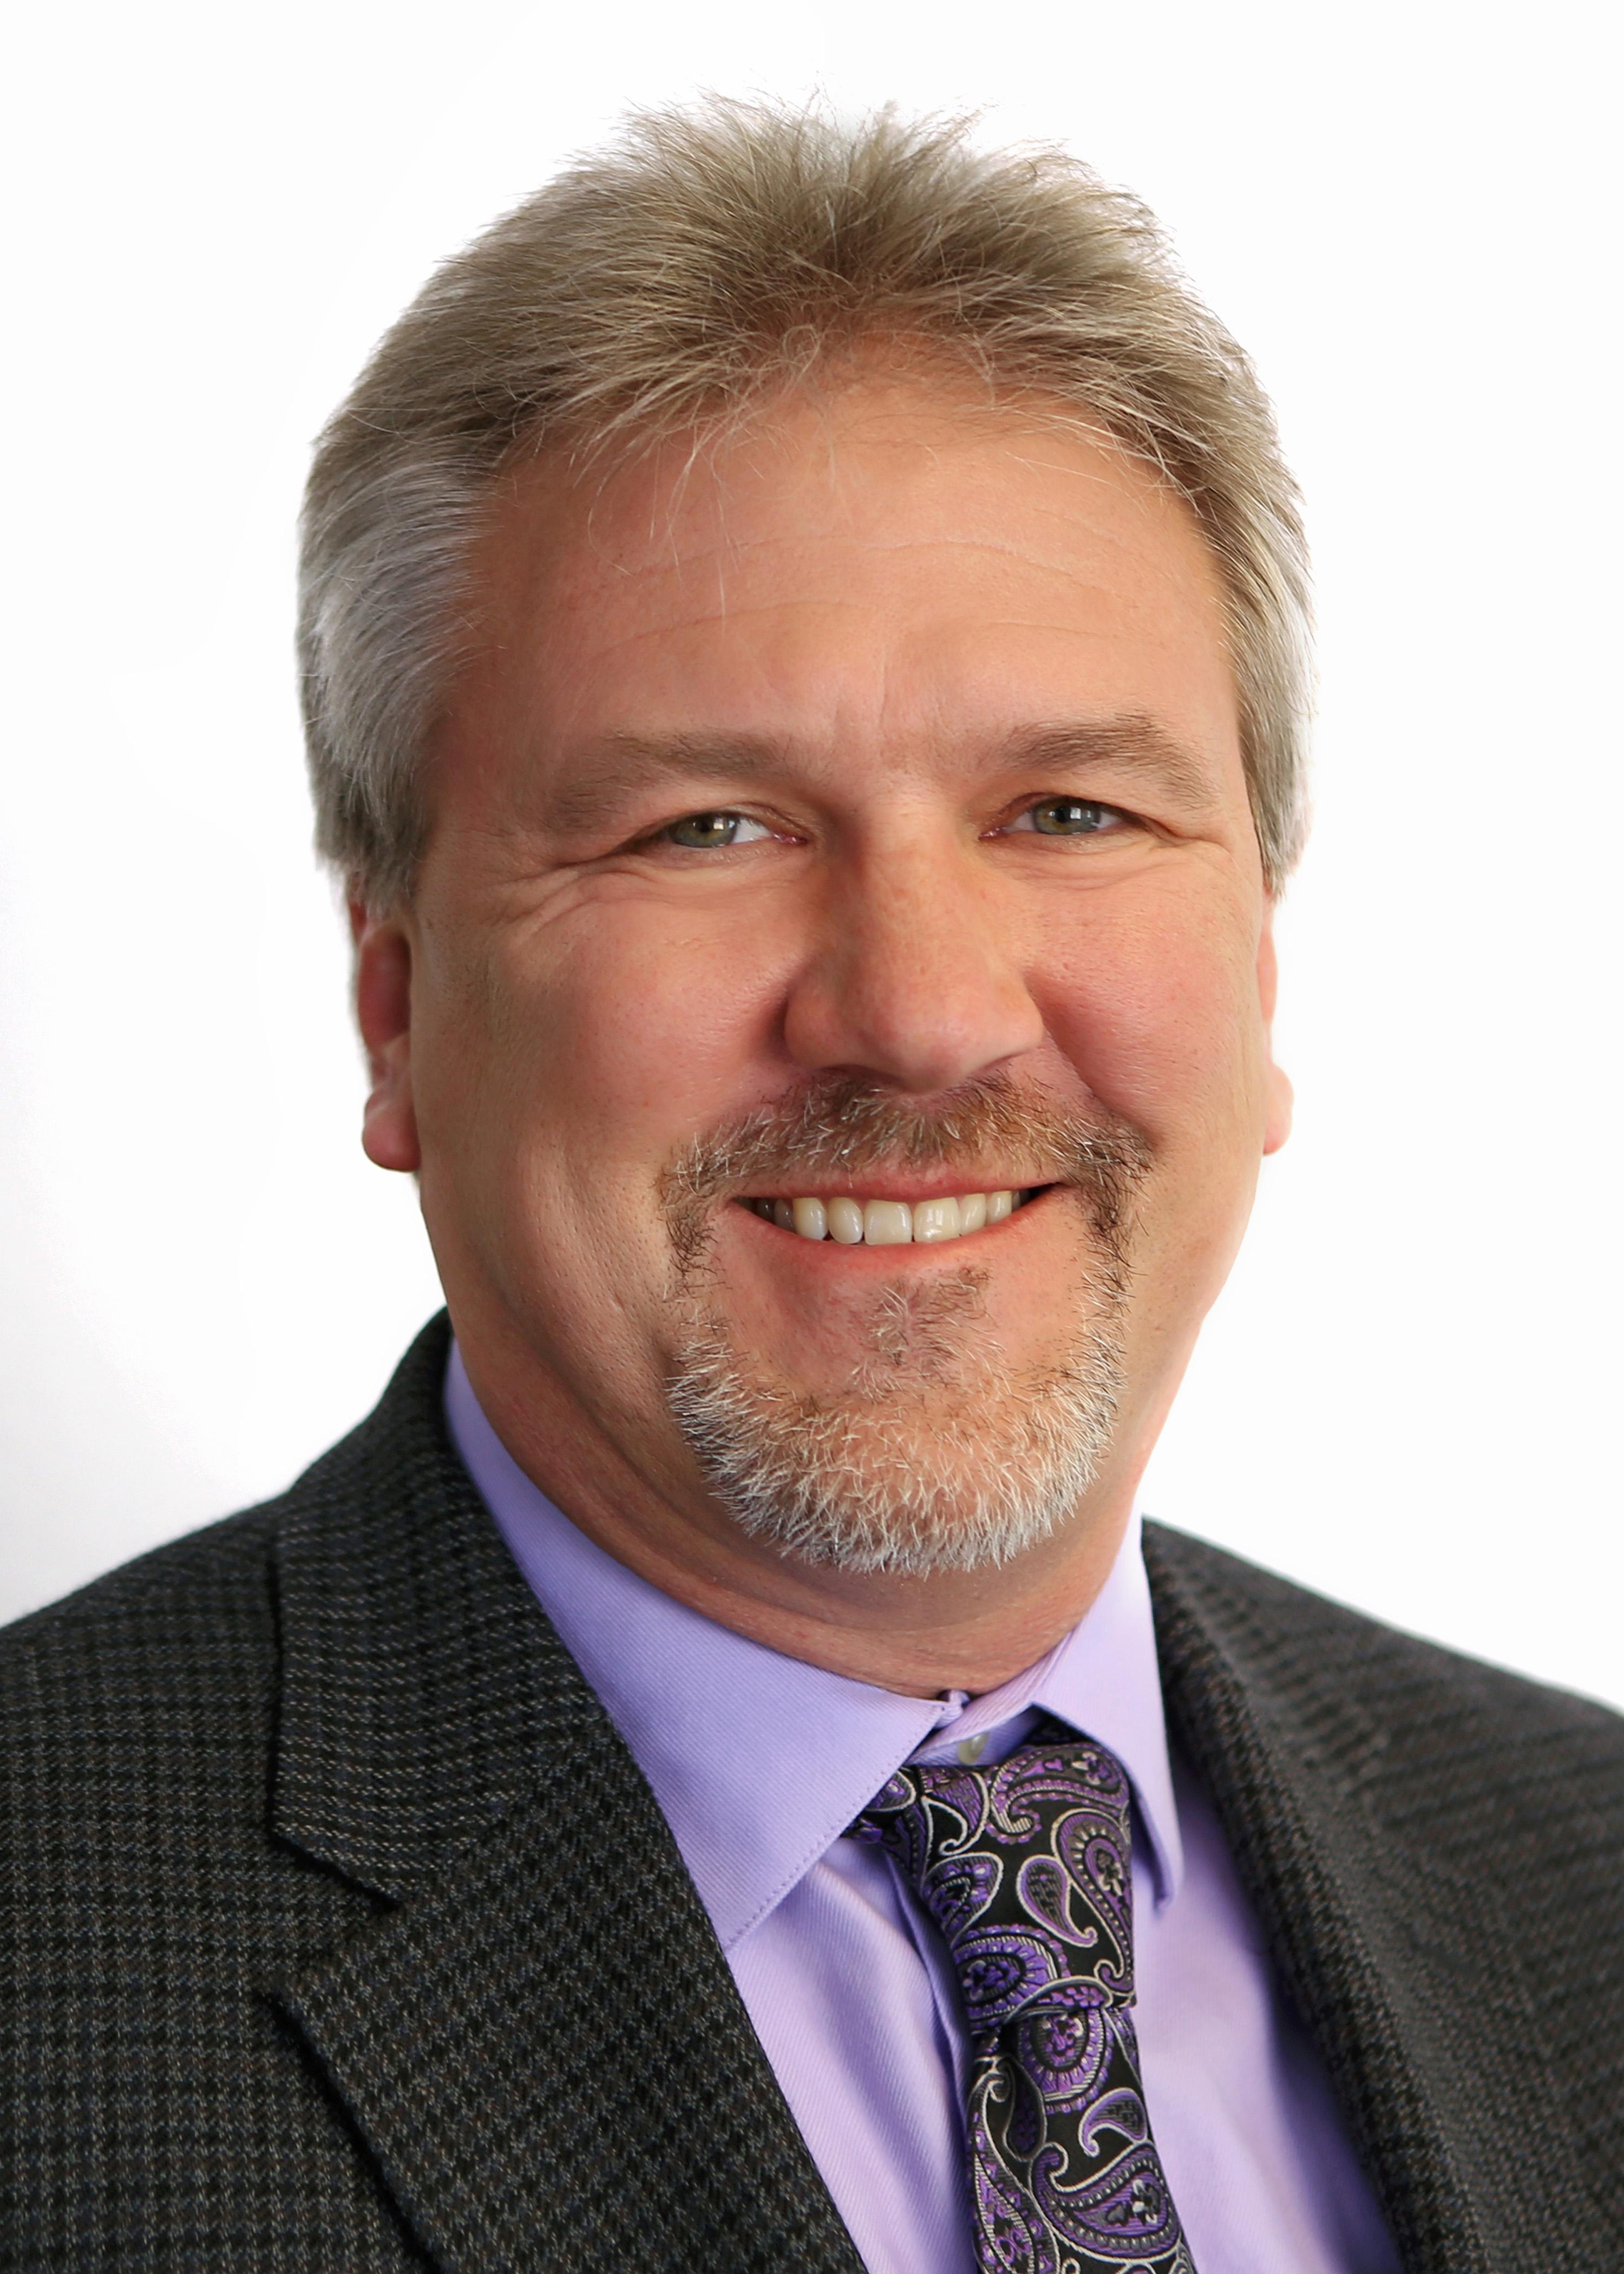 KEVIN BLADOW  Your Registered Representative & Insurance Agent